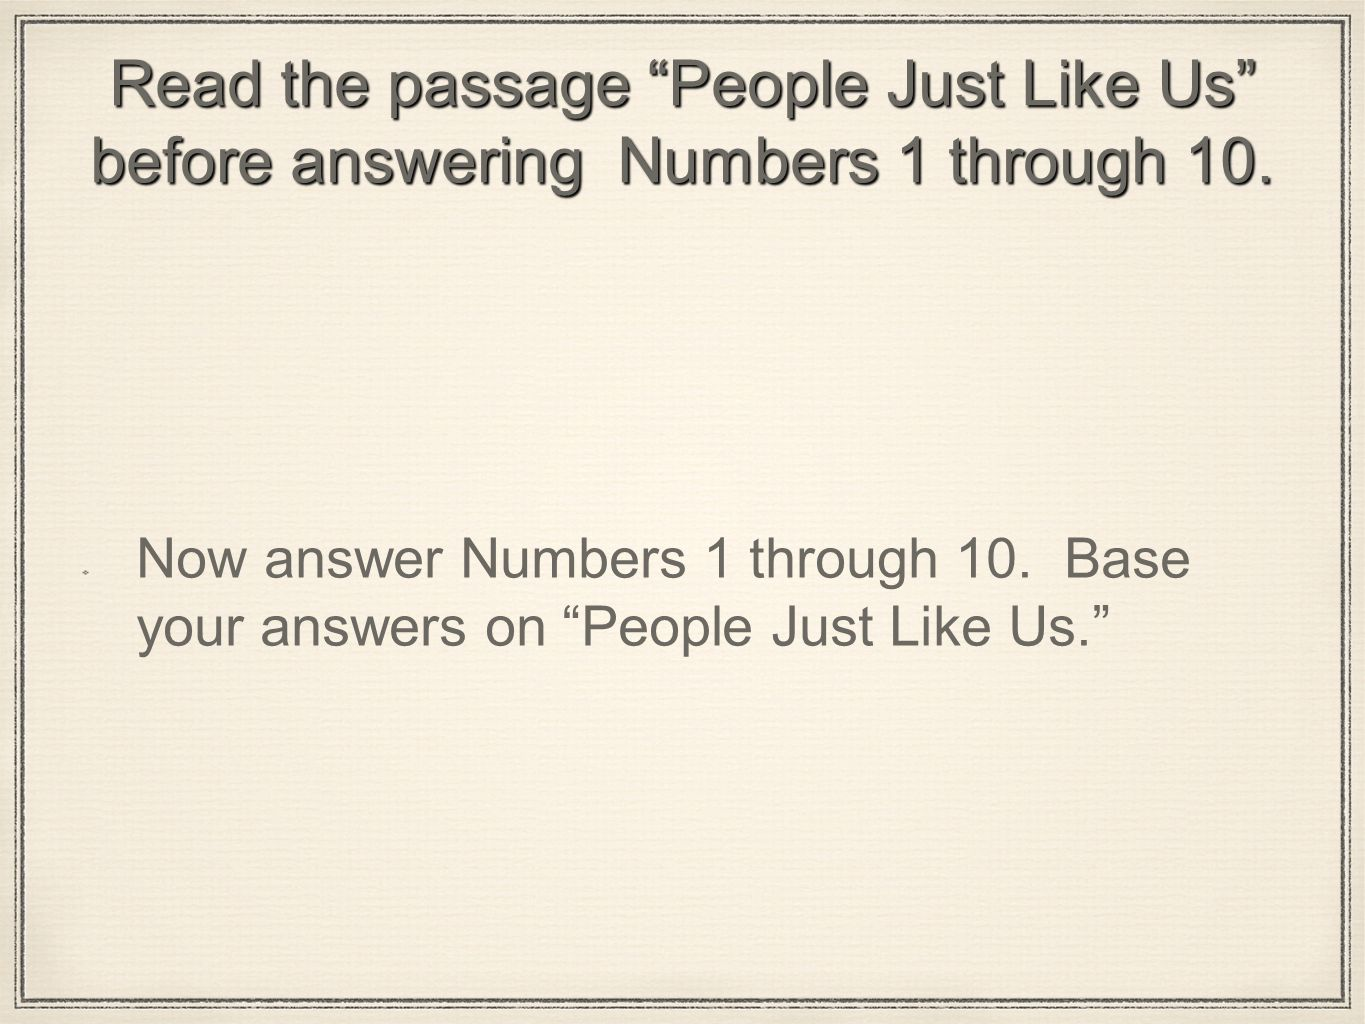 Read the passage People Just Like Us before answering Numbers 1 through 10.